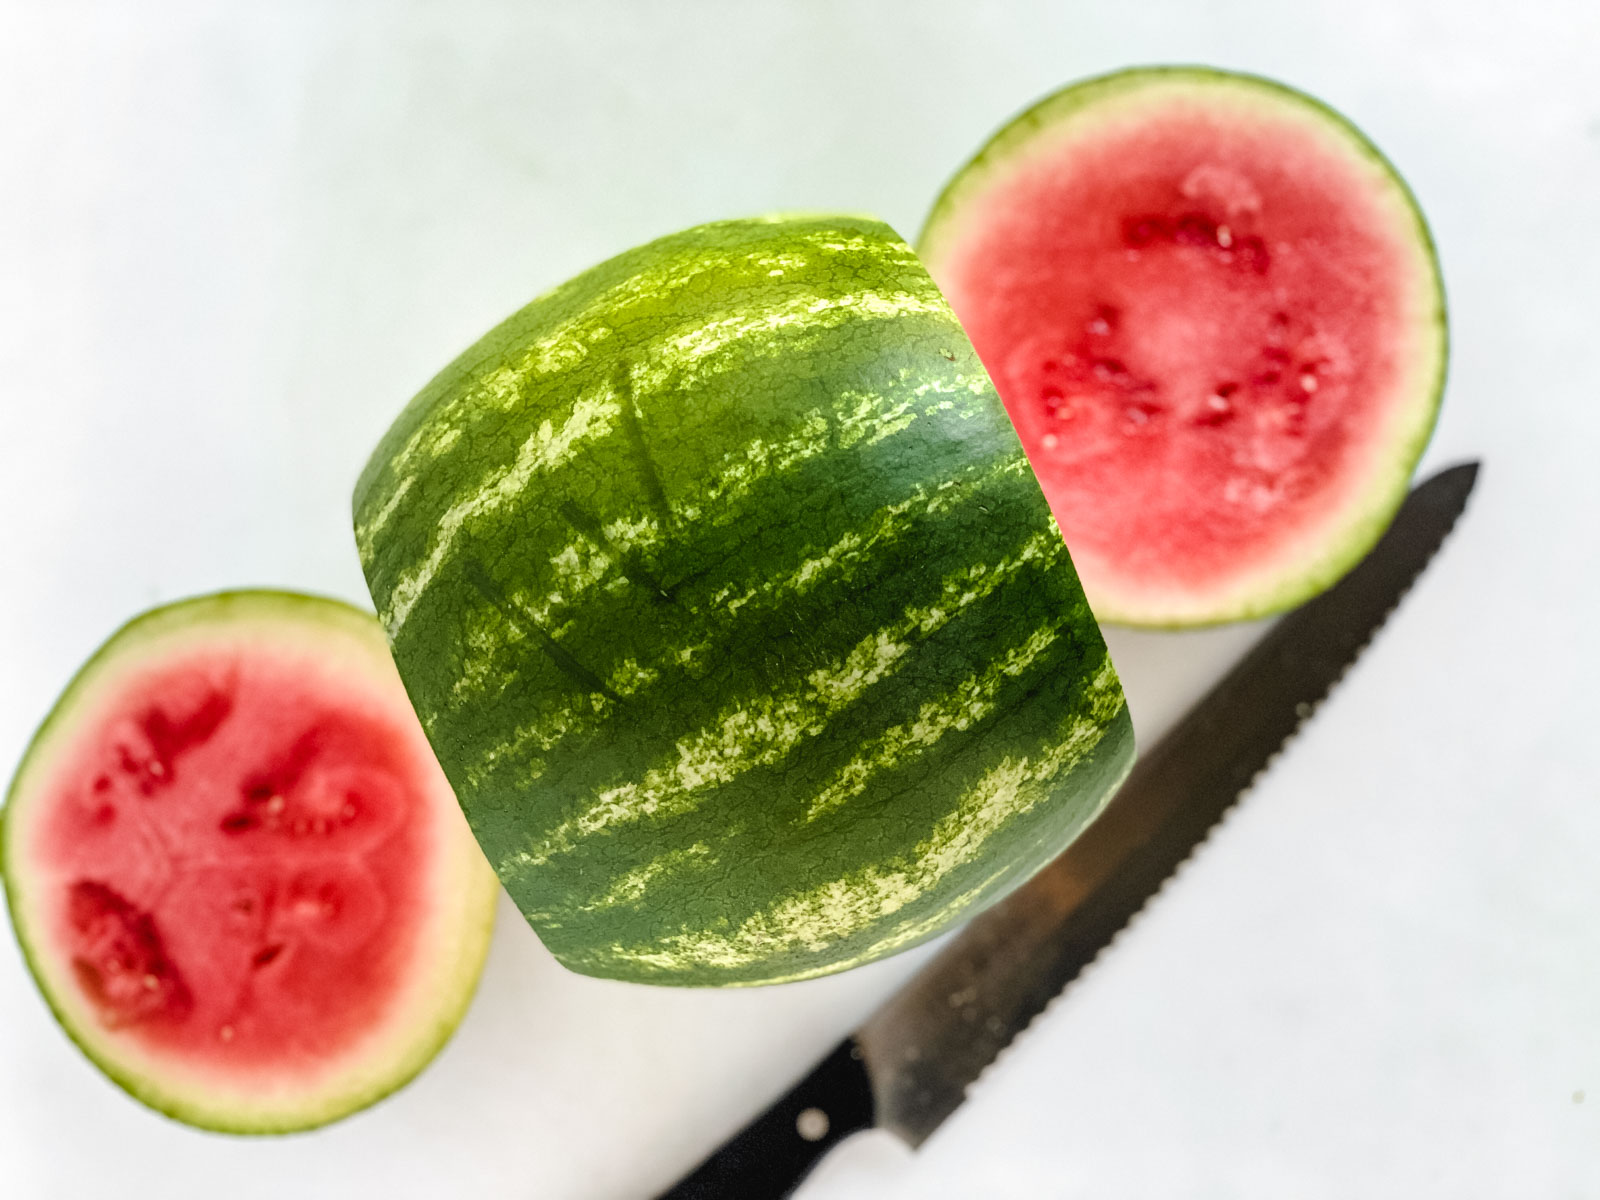 slicing off ends of a watermelon